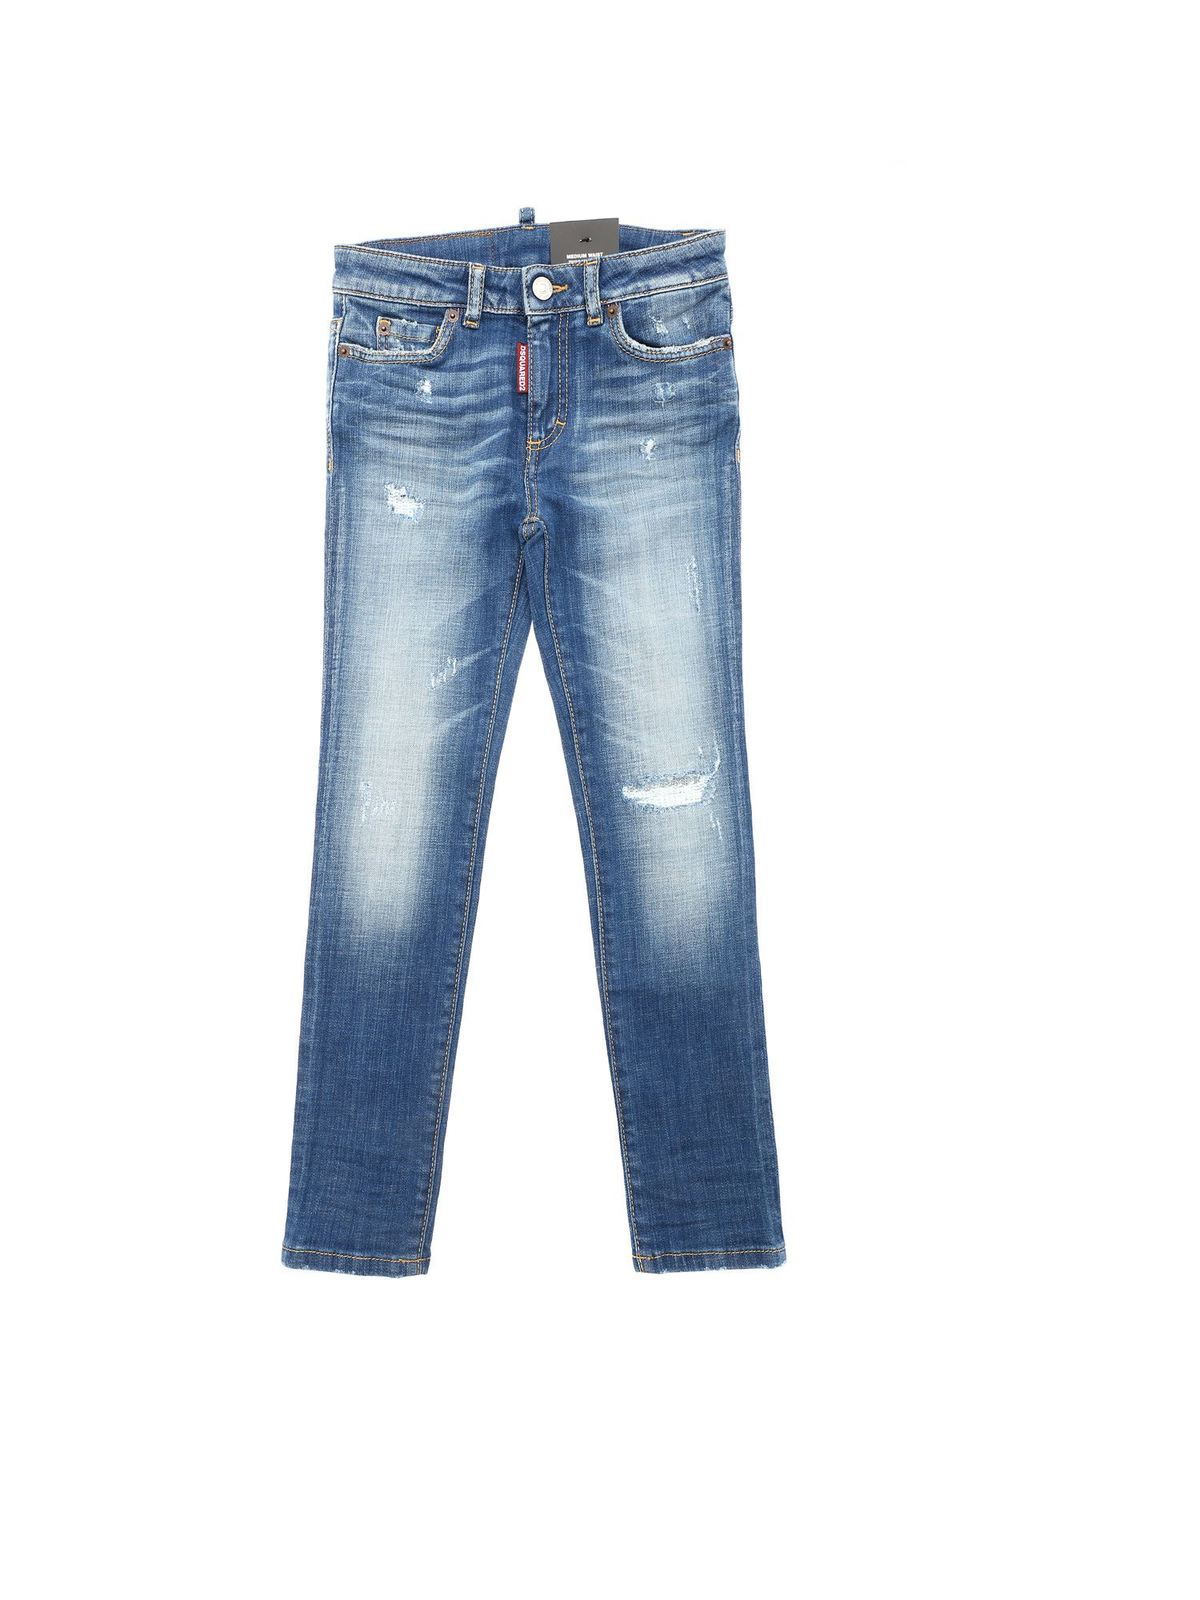 Dsquared2 DESTROYED EFFECT DETAILS JEANS IN BLUE